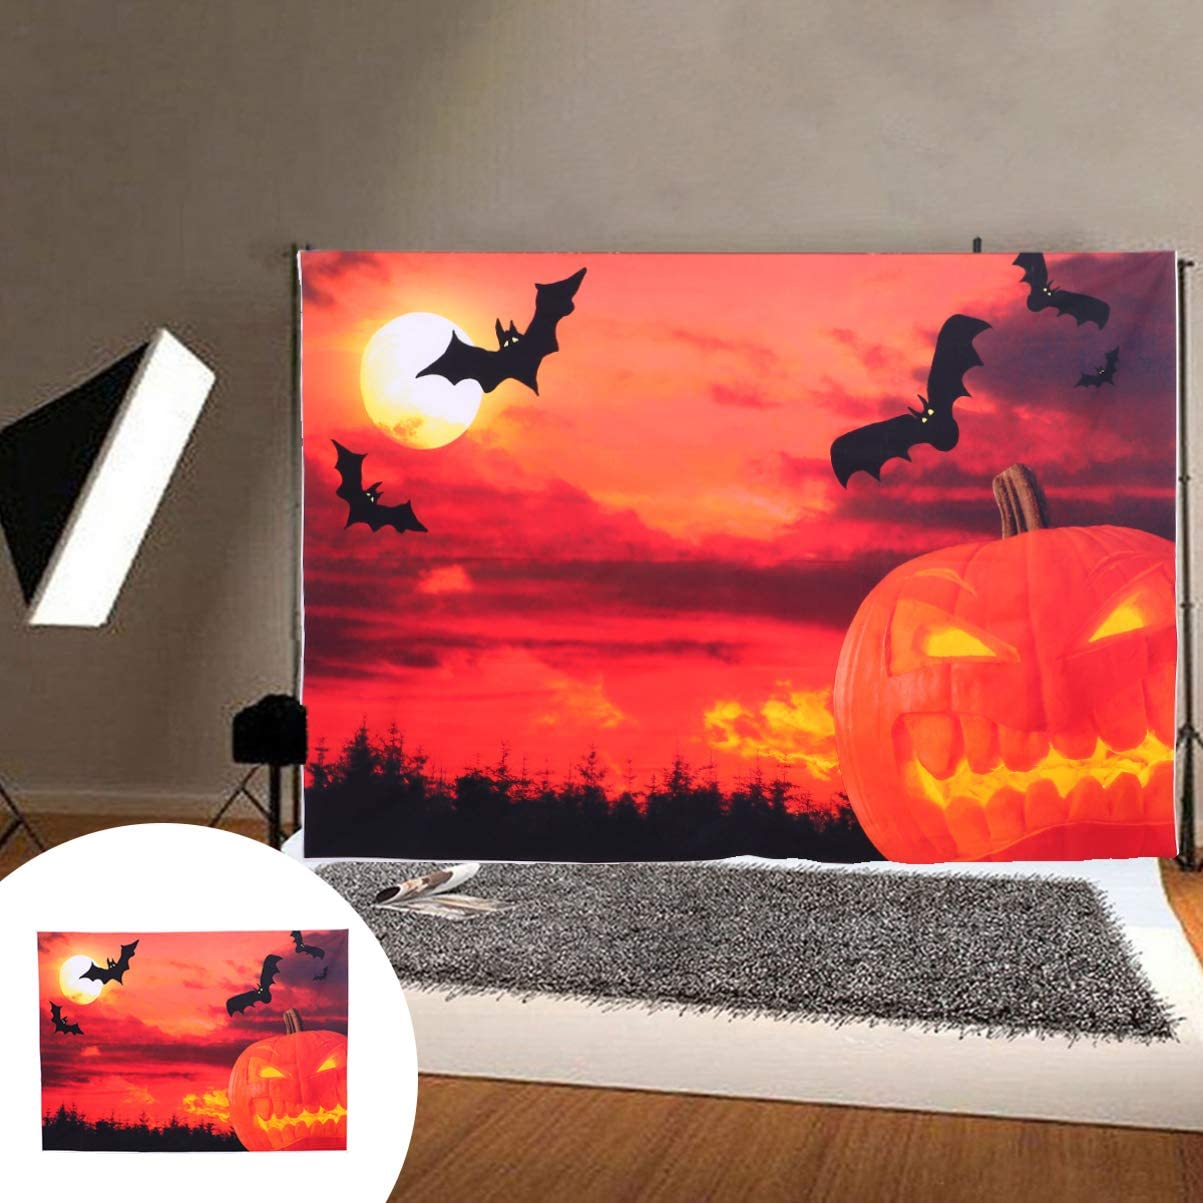 SOLUSTRE 210x150cm Halloween Backdrop Halloween Photo Props for Home Party Decoration Moon Pumkin Bat Pattern Background Hanging Cloth